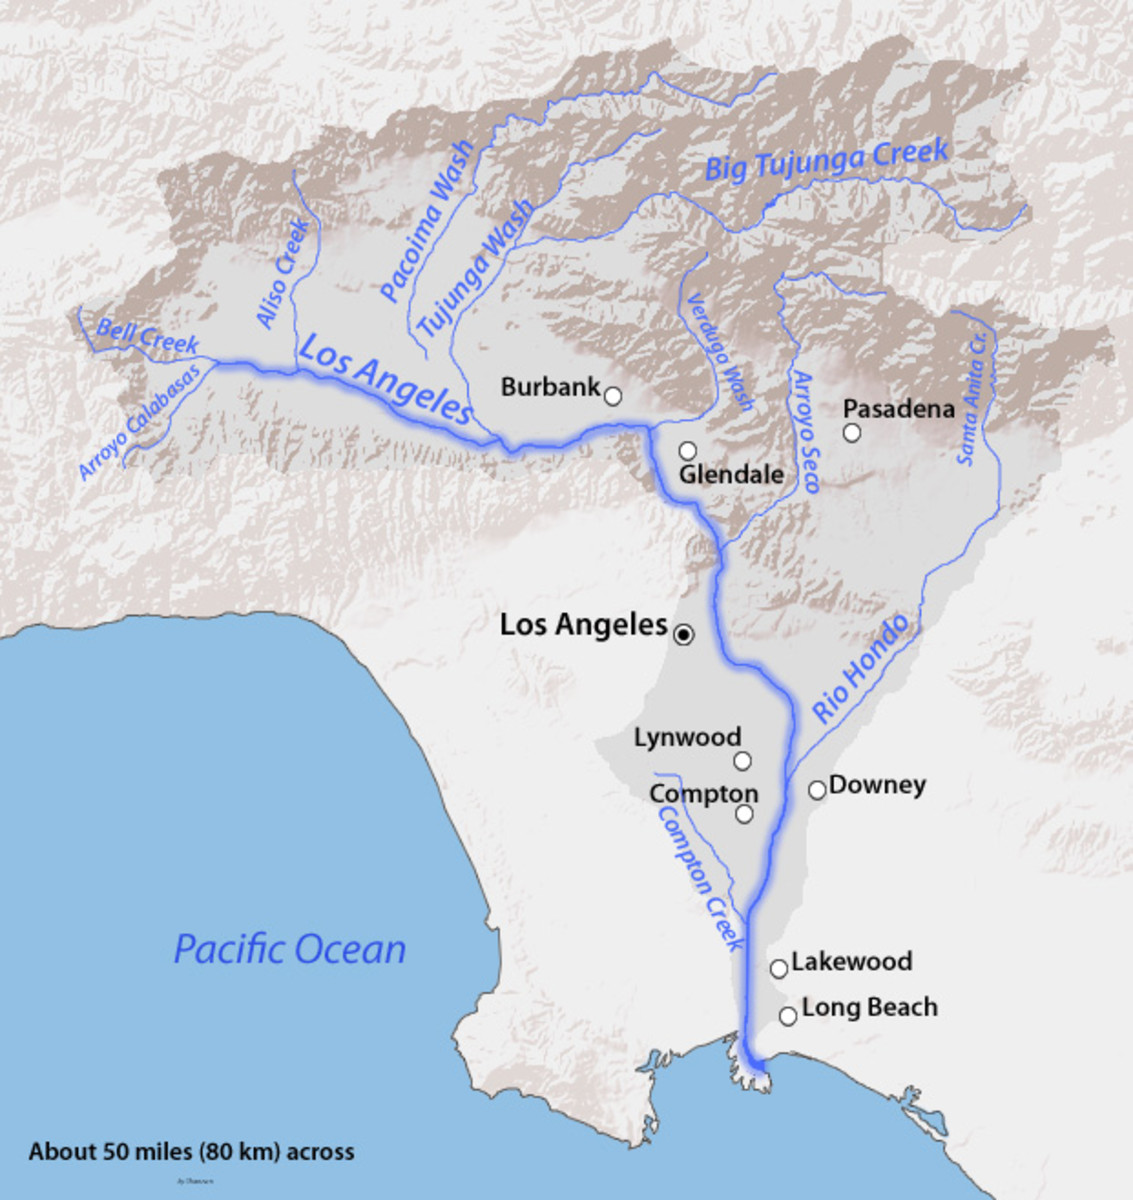 Several streams running south through the San Gabriel Mountains join  together one by one to form the river.